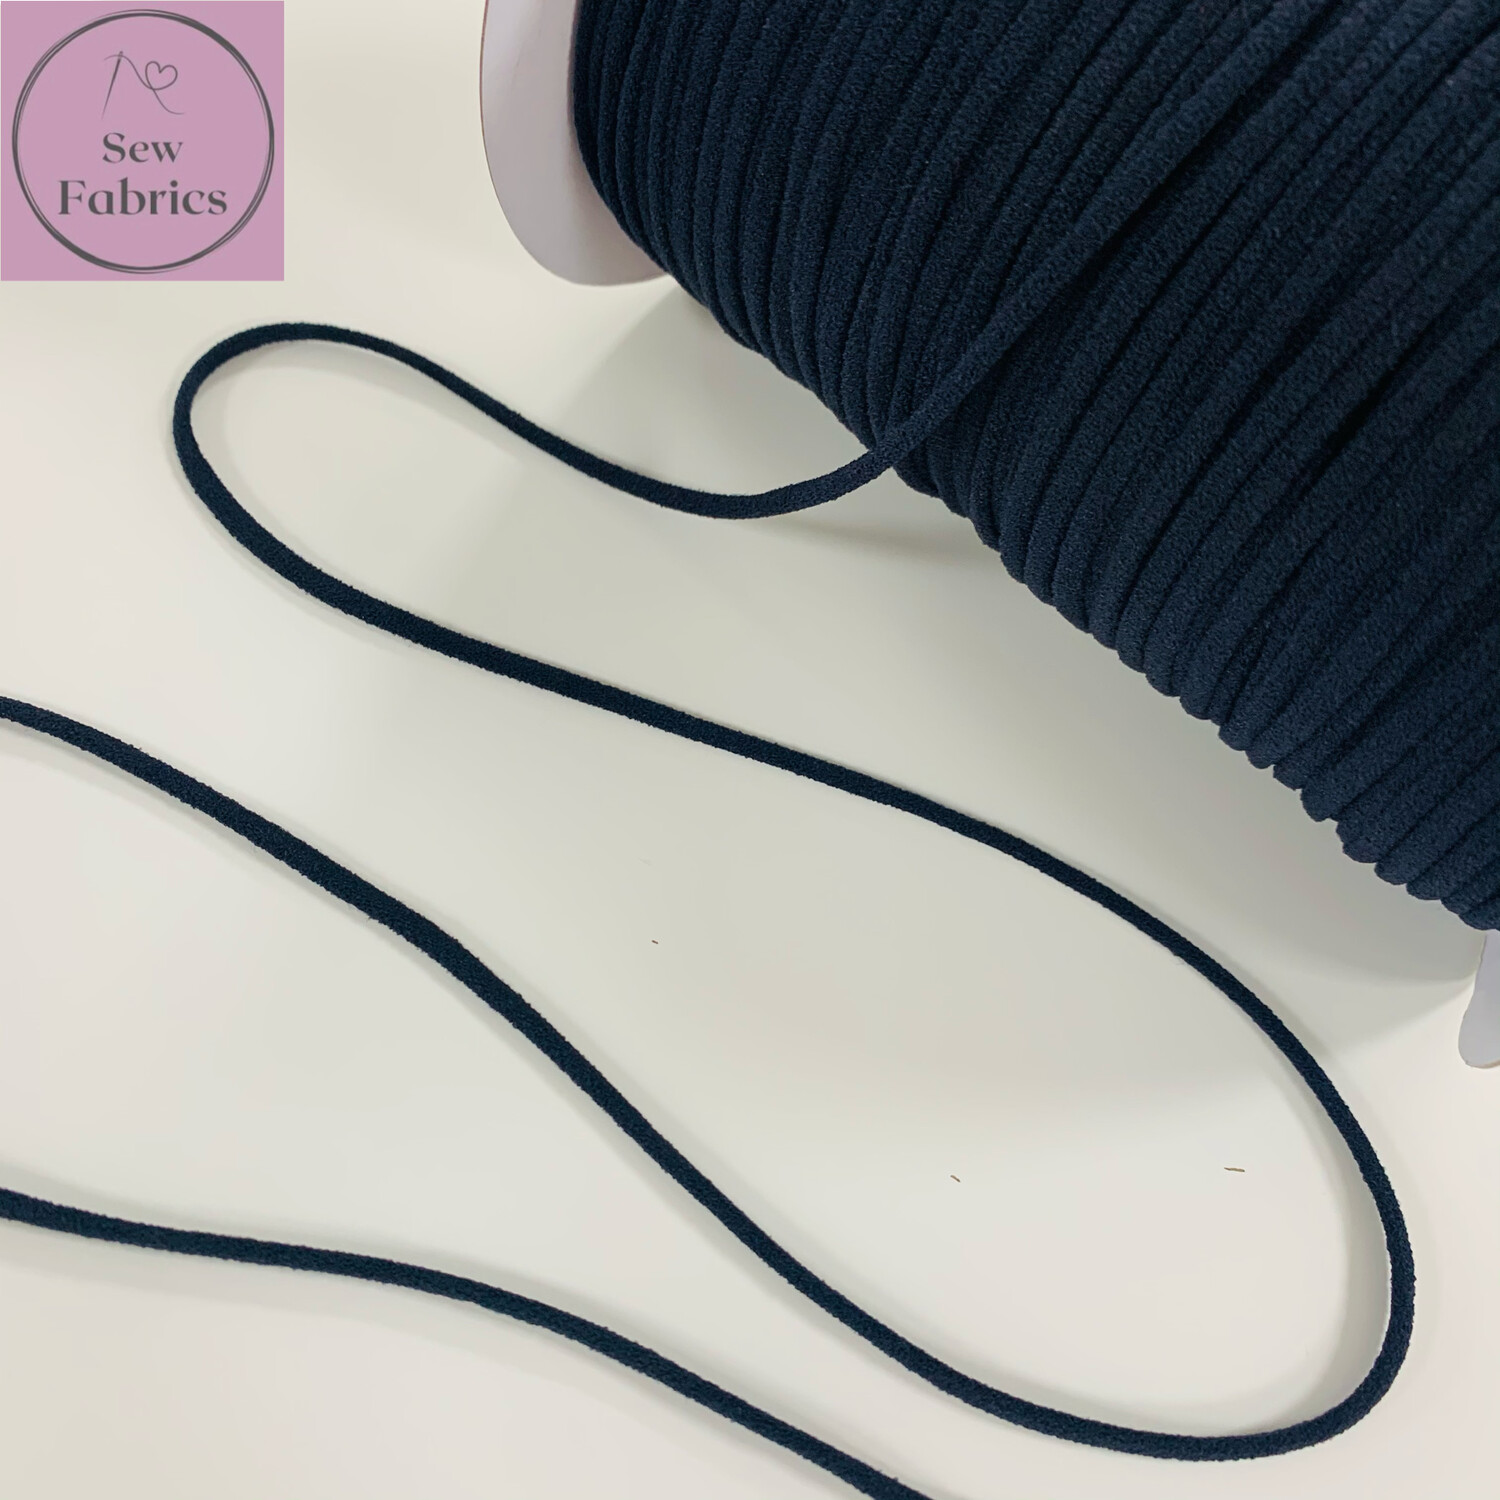 Bertie's Bows 137m / 150yd Reel of 3mm Black Soft Round Elastic, Ideal For Face Masks